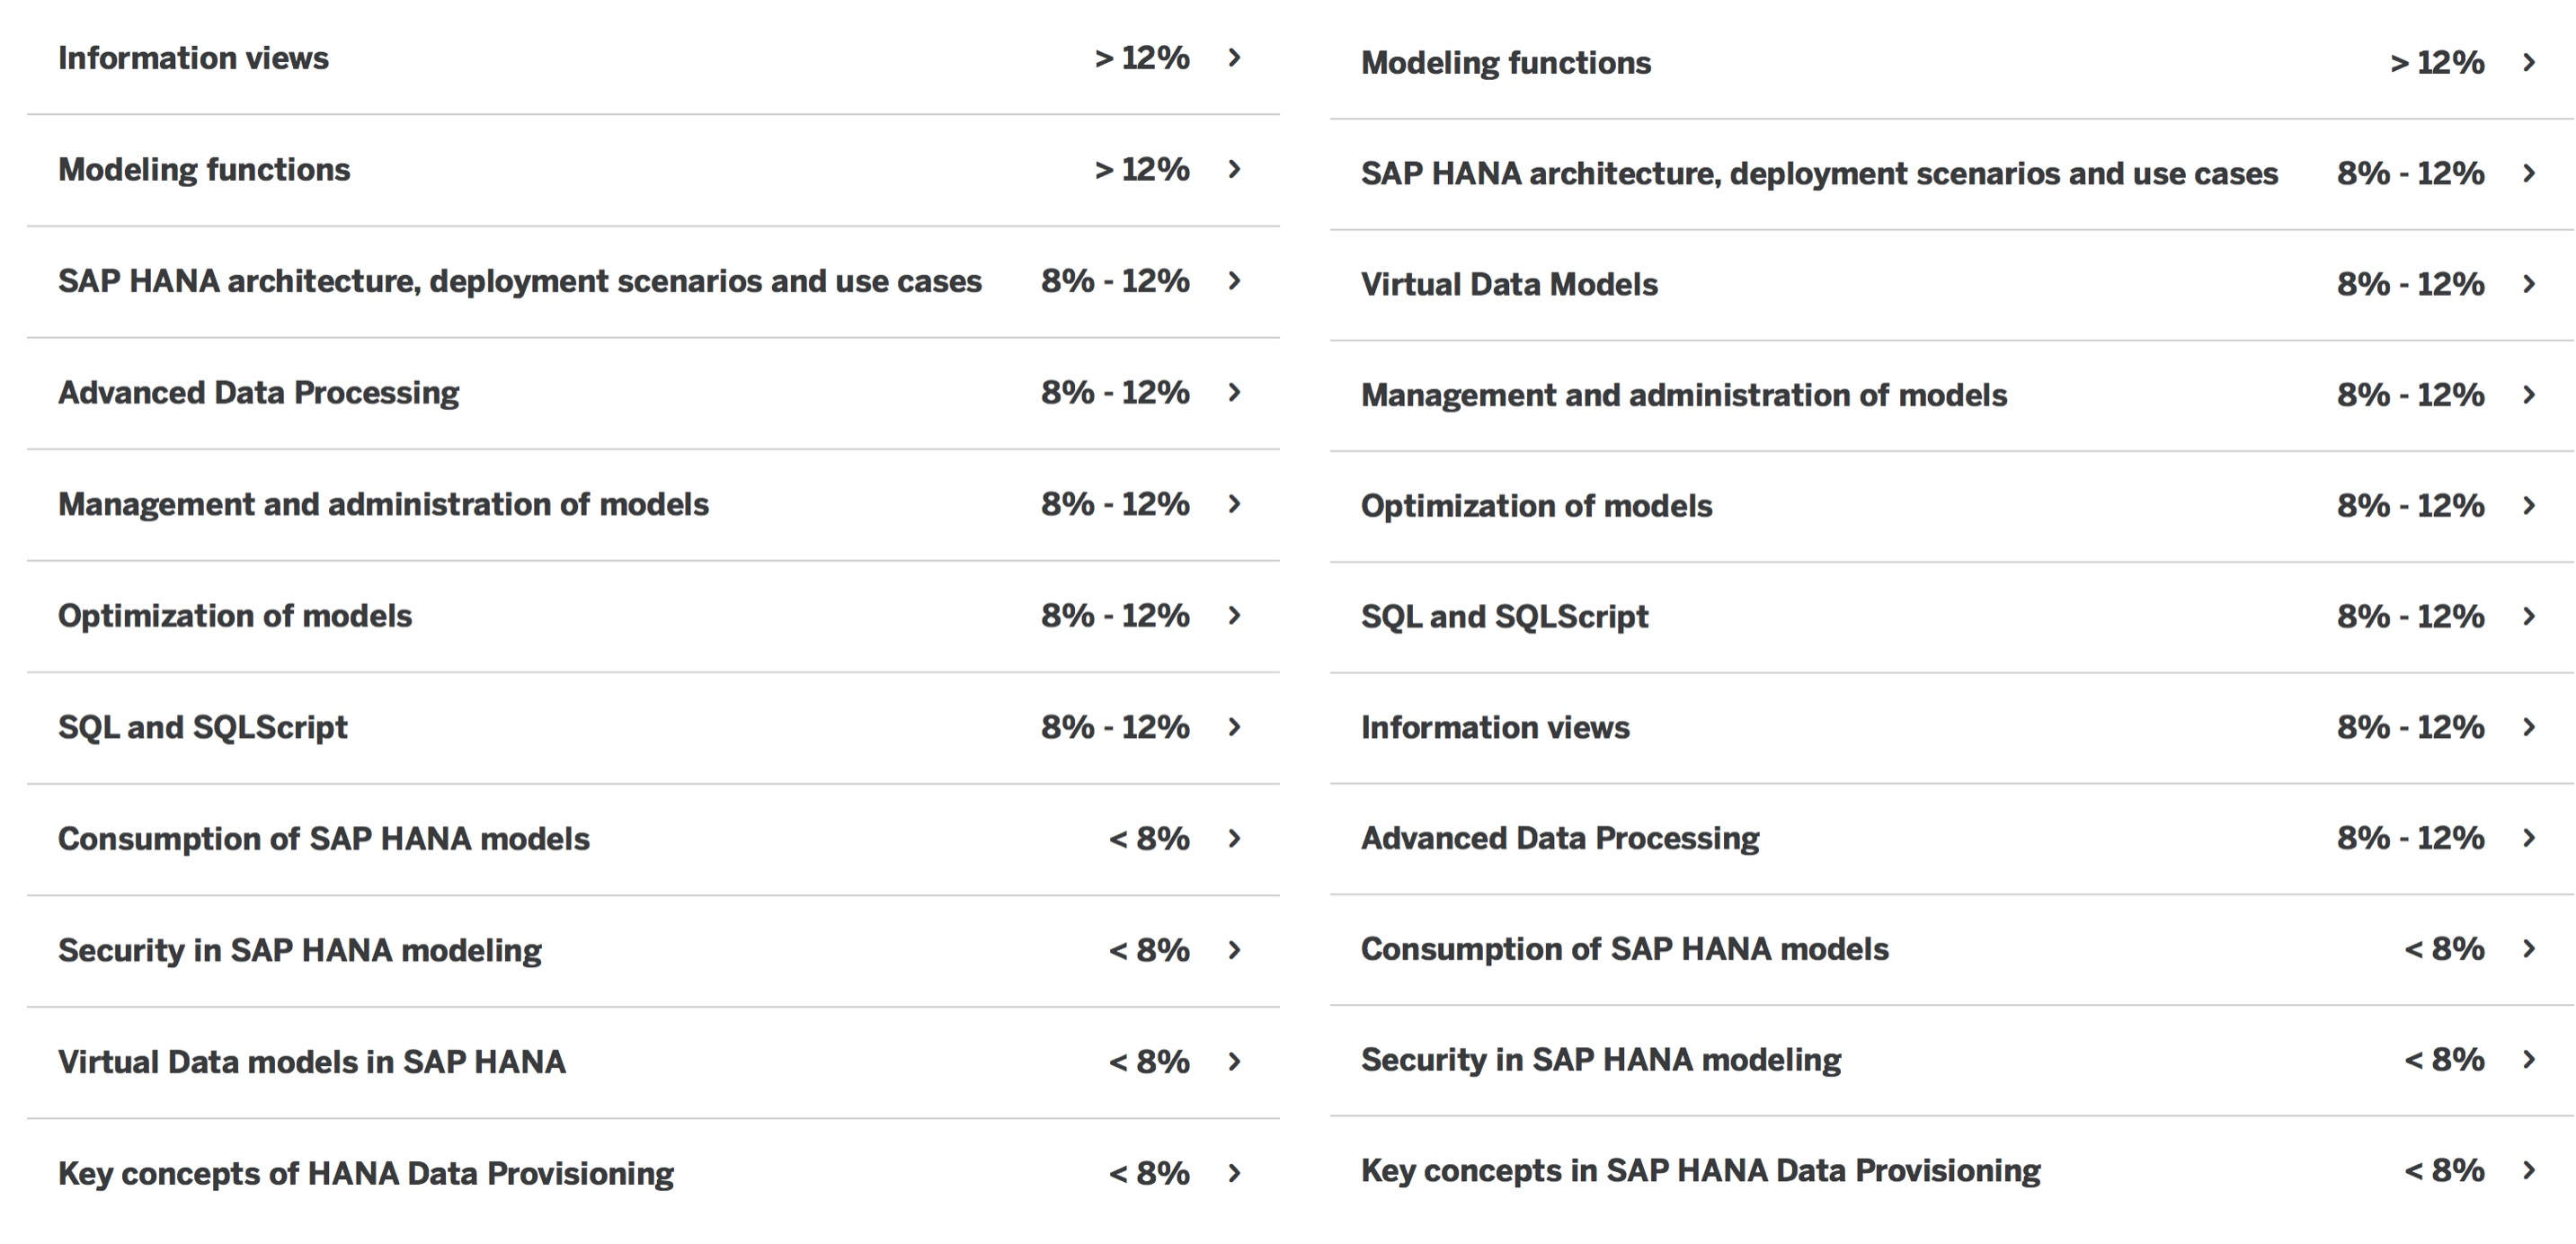 Sap certified application associate chanaimp13 by the sap hana the topic area virtual data models in sap hana has lost some weight for the exam whereas information views has put on some baditri Image collections